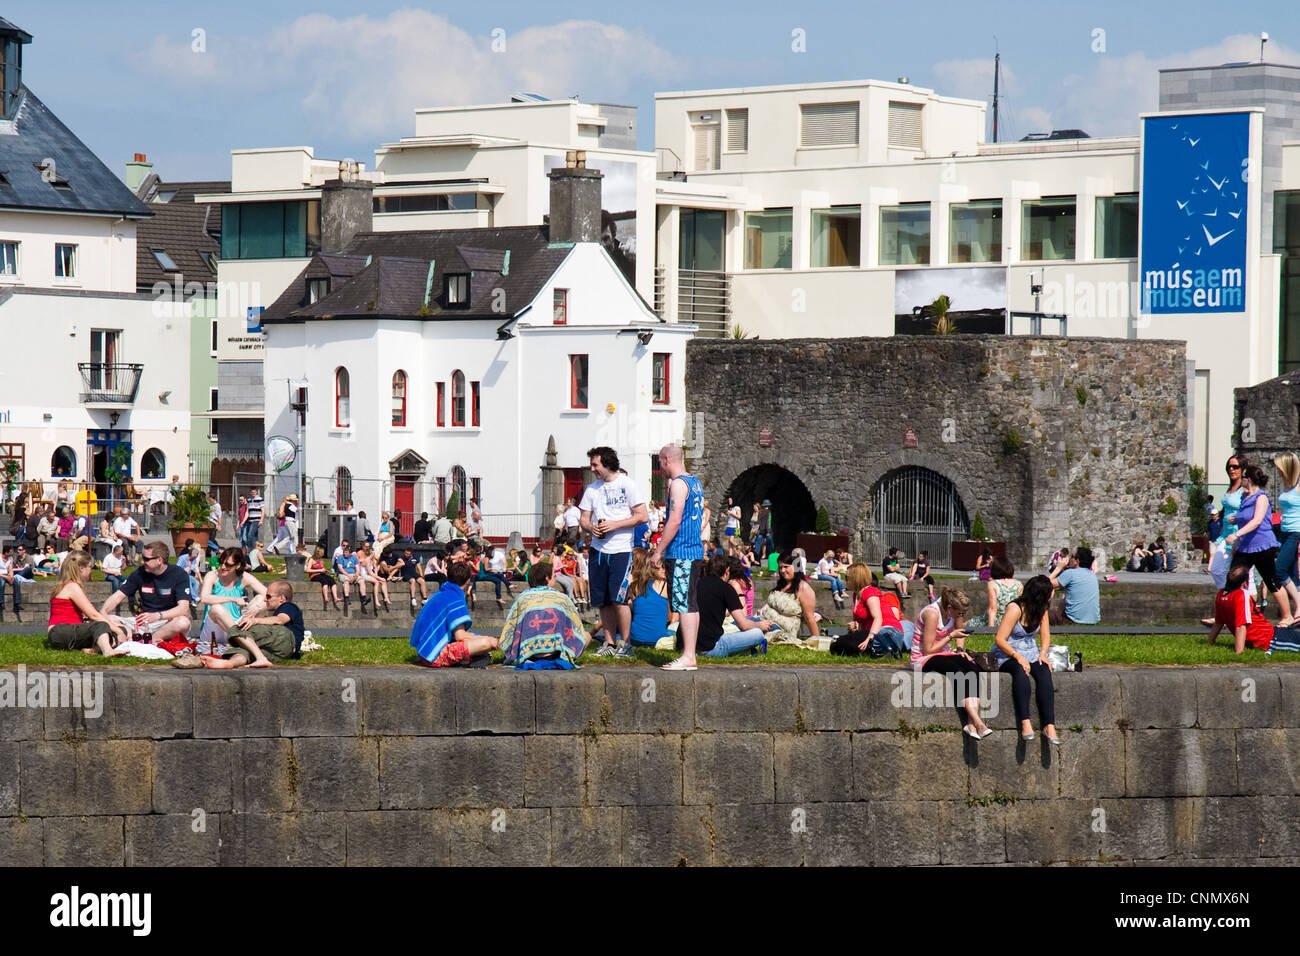 Crowds enjoying the sun at the Spanish Arch quays in Galway City Ireland - Stock Image